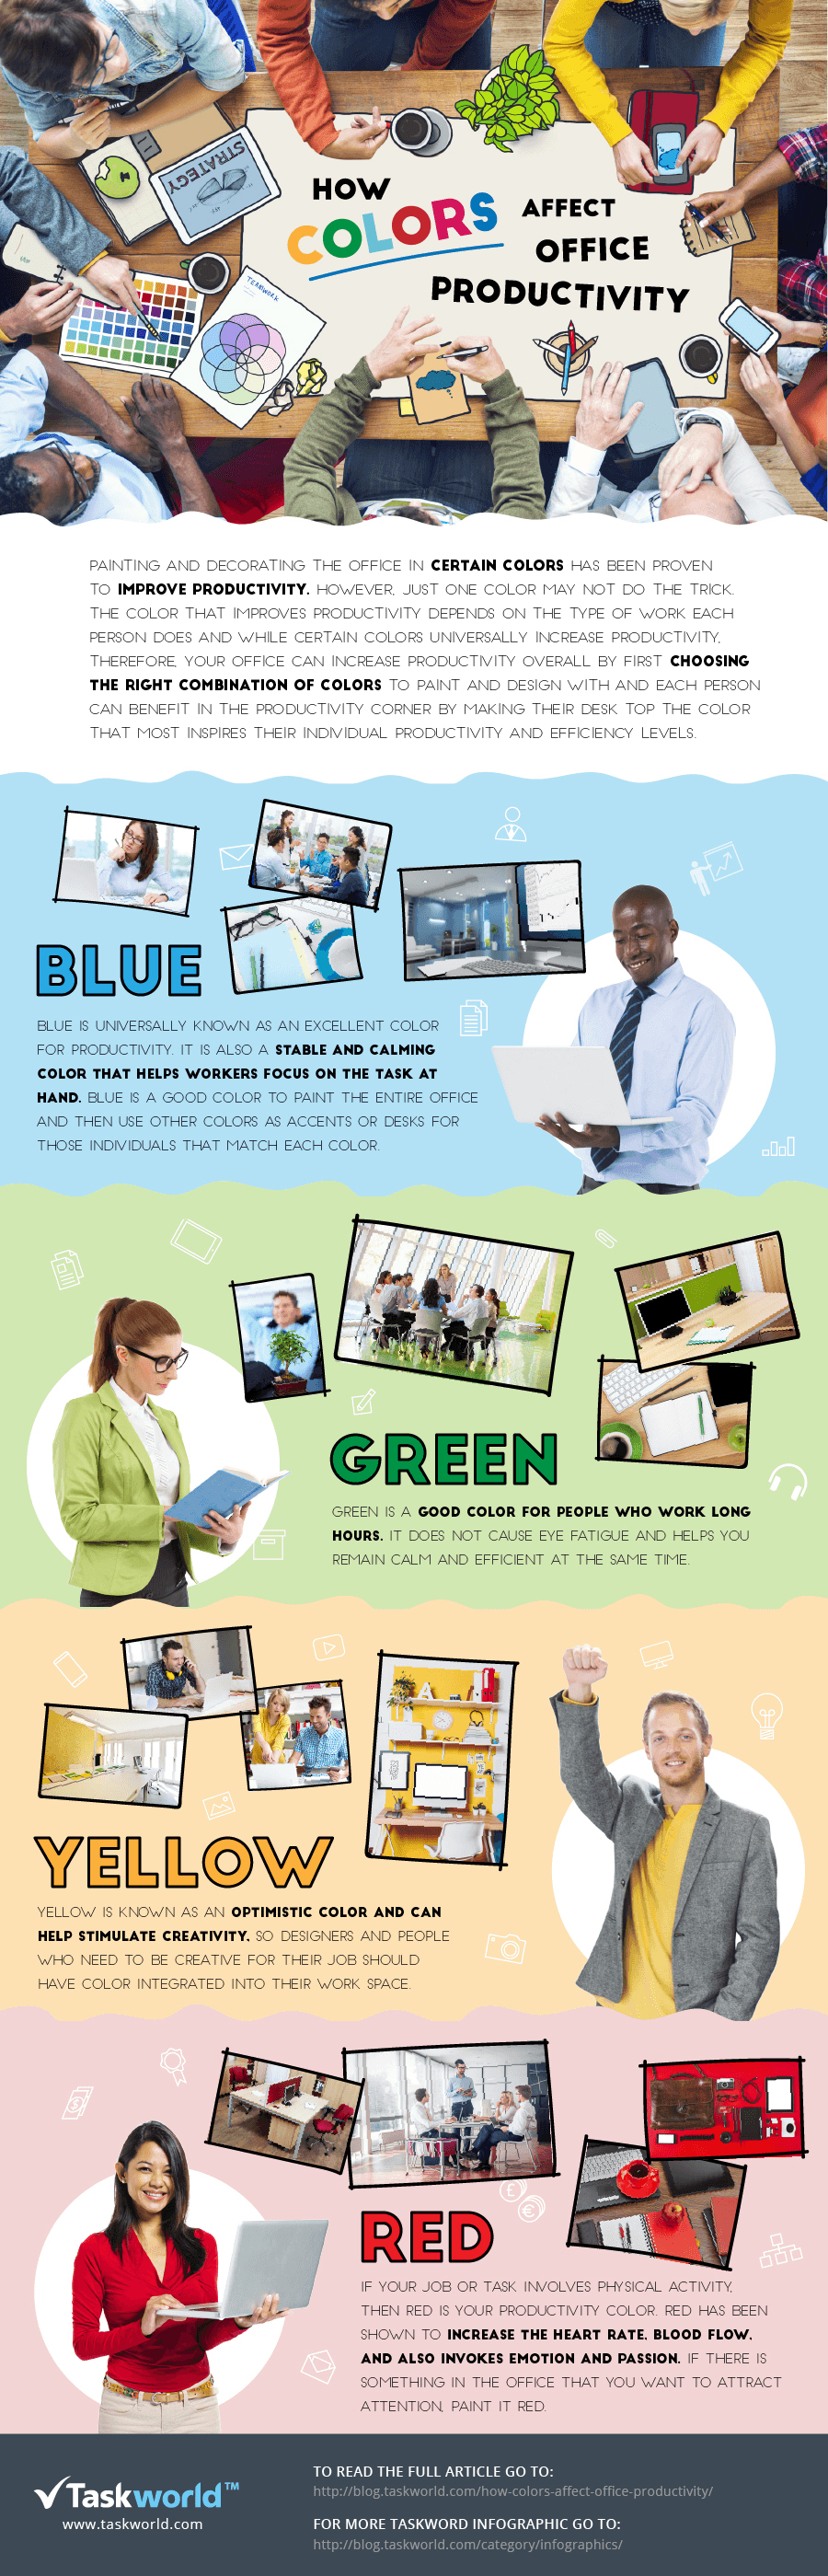 Can Colors Affect Your Productivity